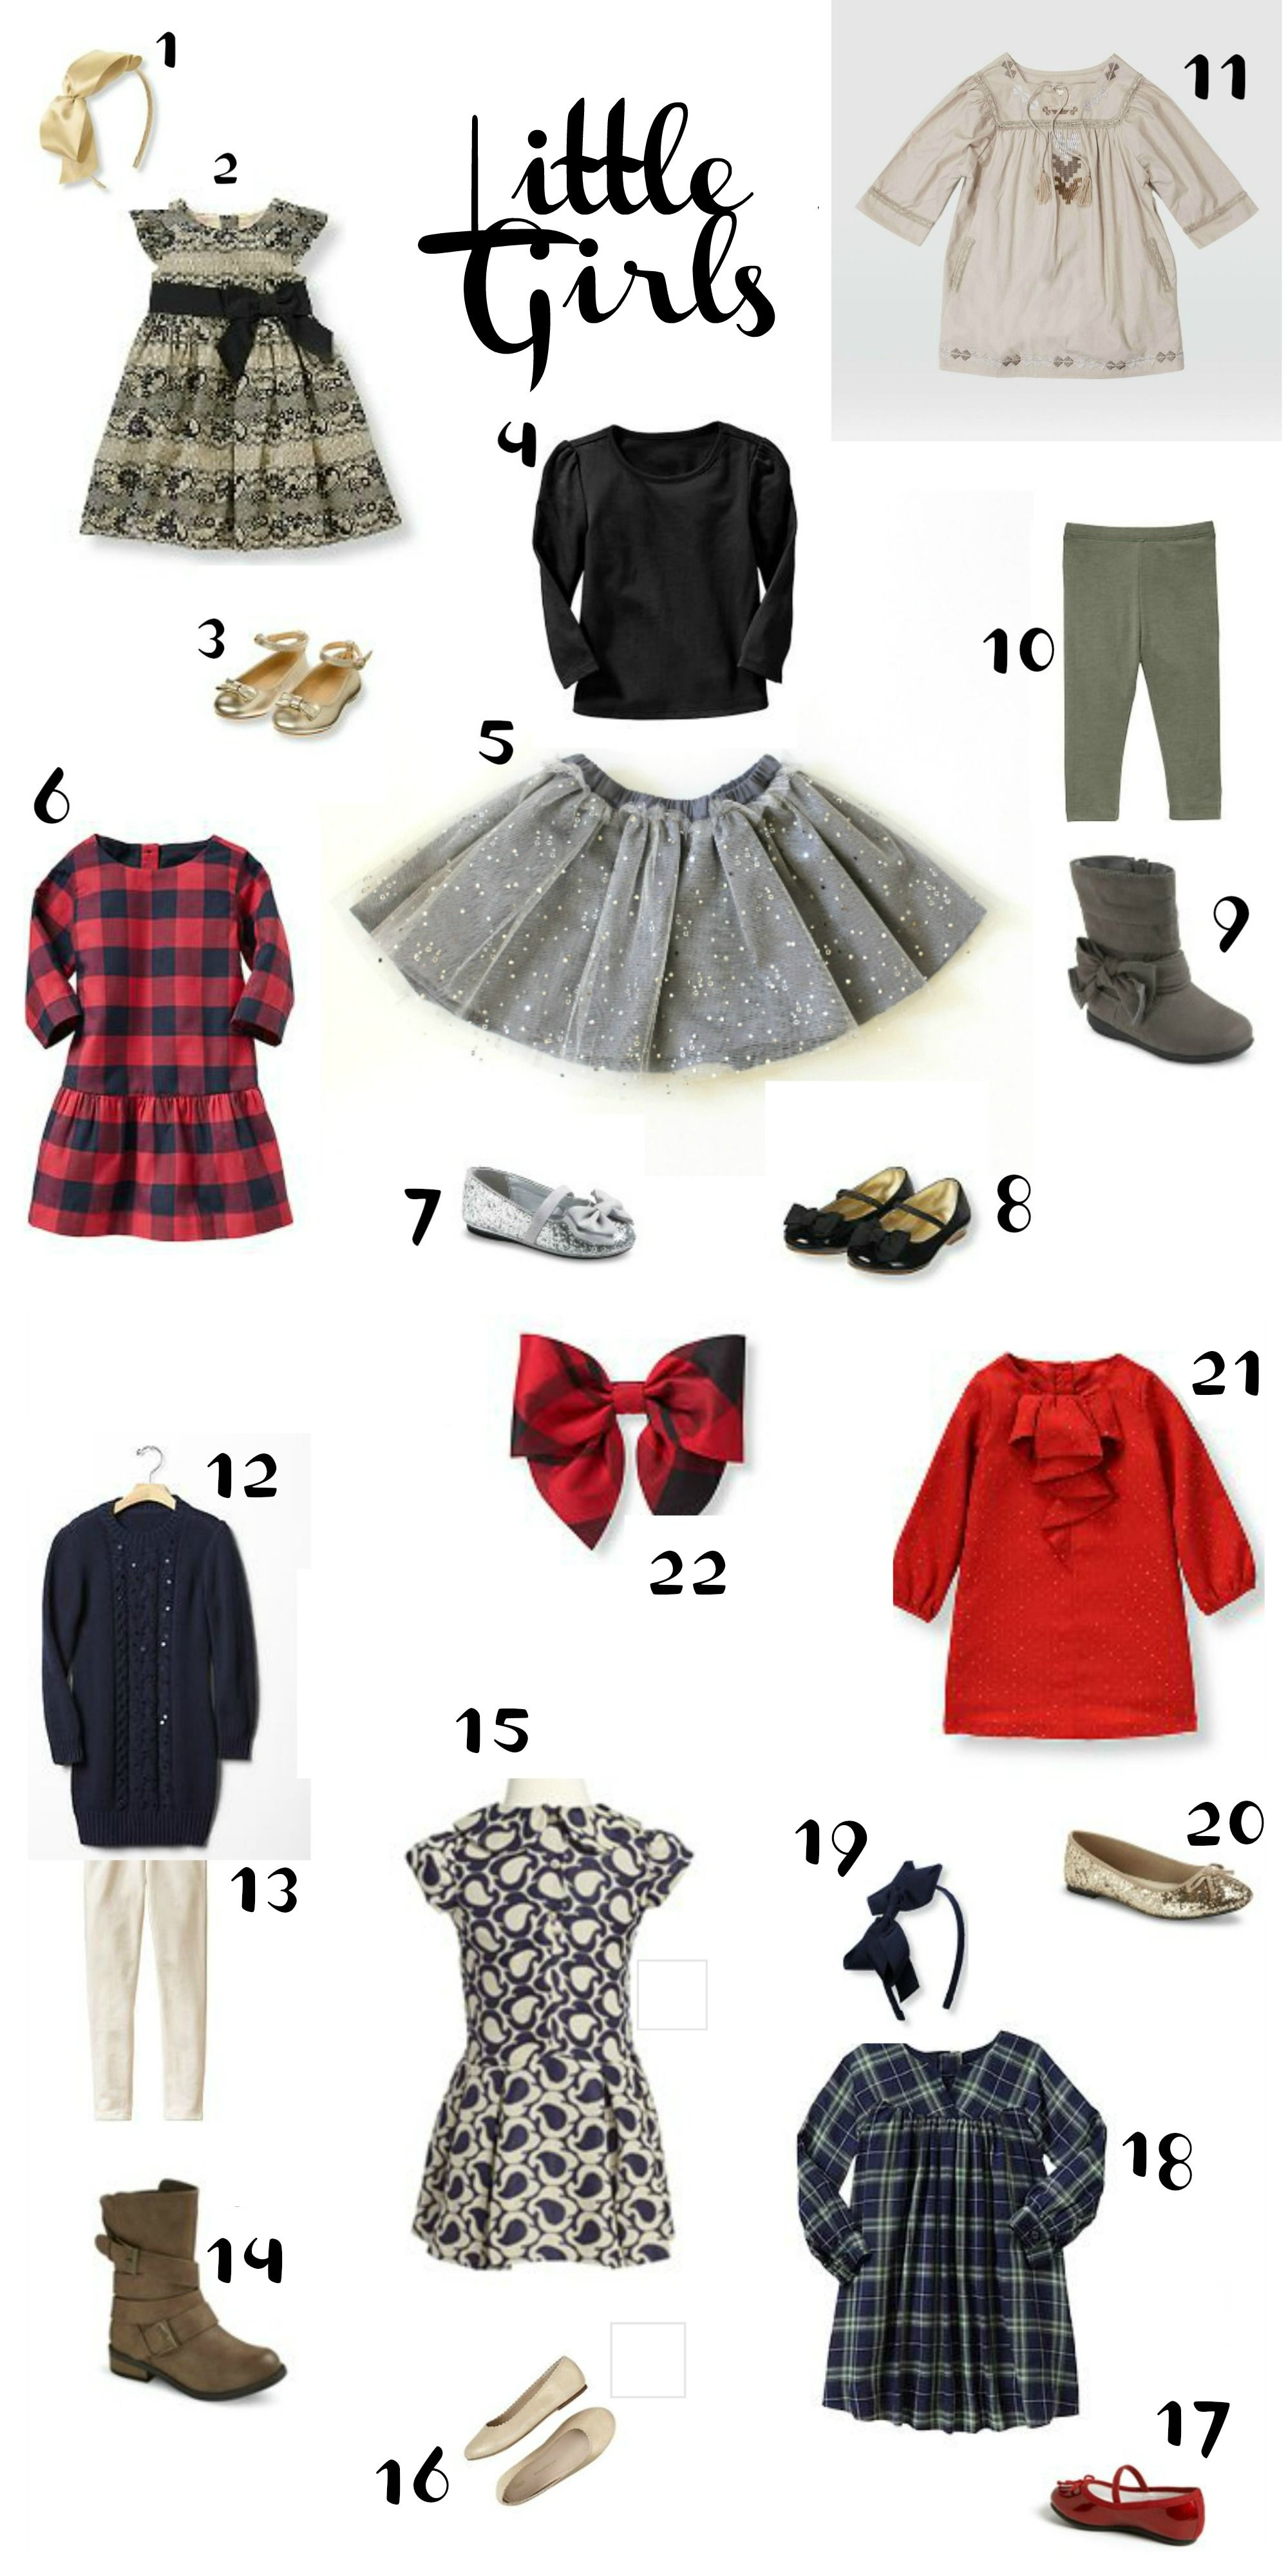 0d5e99600f0f0 Adorable outfits for your little girl's holiday pictures! Featuring clothing  from DLK, Janie & Jack, Gap, Old Navy, and Nordstrom. #FashionFriday # holidays